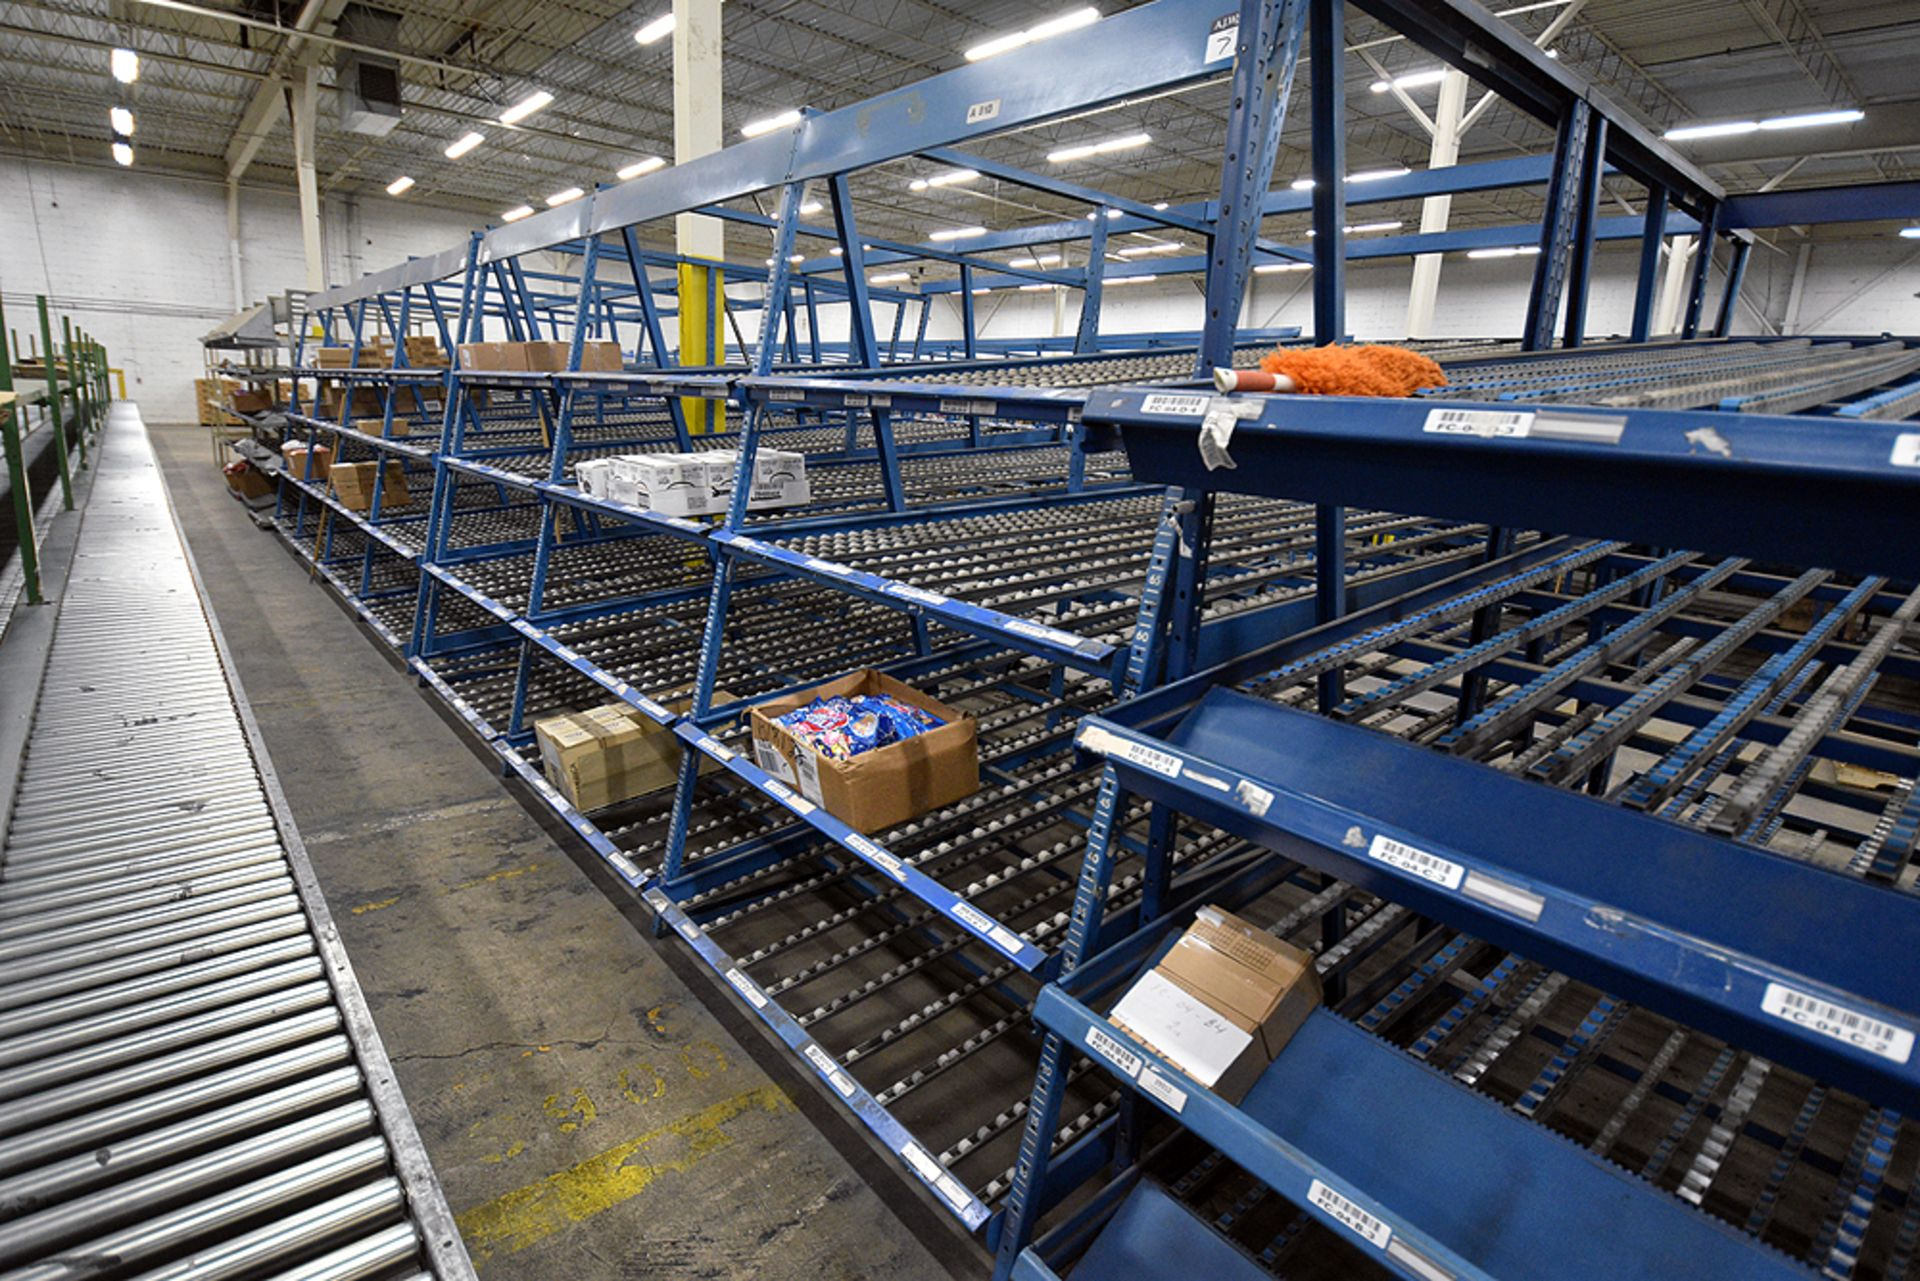 """4-Tier Gravity Fed, Carton Flow Rack (124""""x187""""x95""""H) (108""""x1"""" Rollers) - Image 4 of 4"""